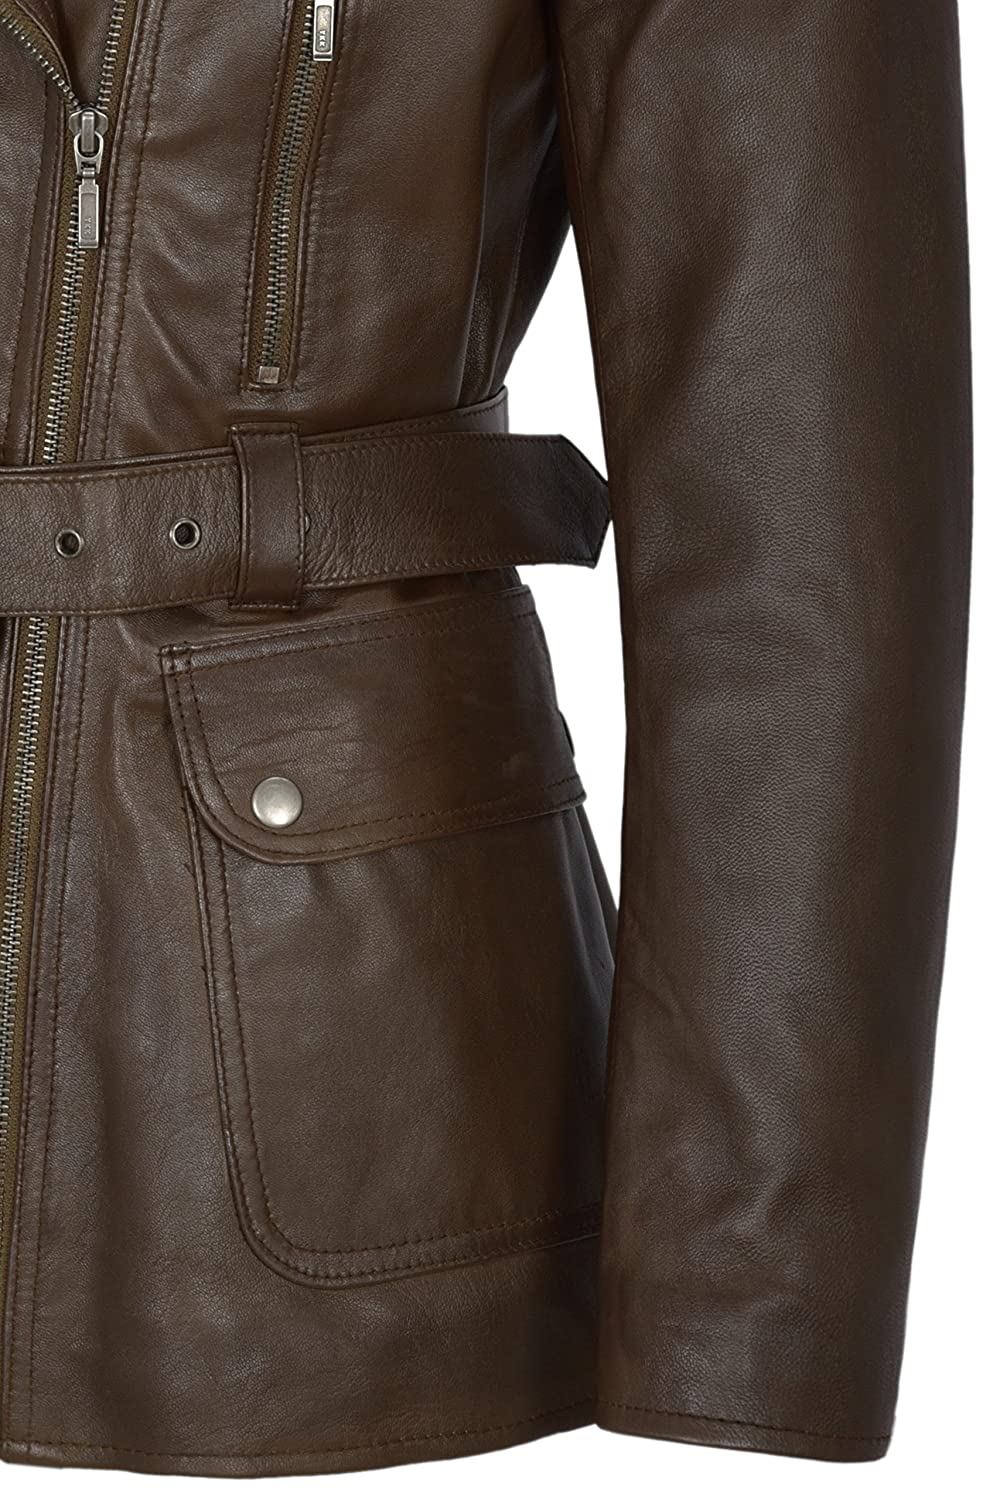 Smart Range Womens Real Lambskin Brown Leather Jacket Trench Fashion Designer Mid-Length Winter Coat at Amazon Womens Coats Shop